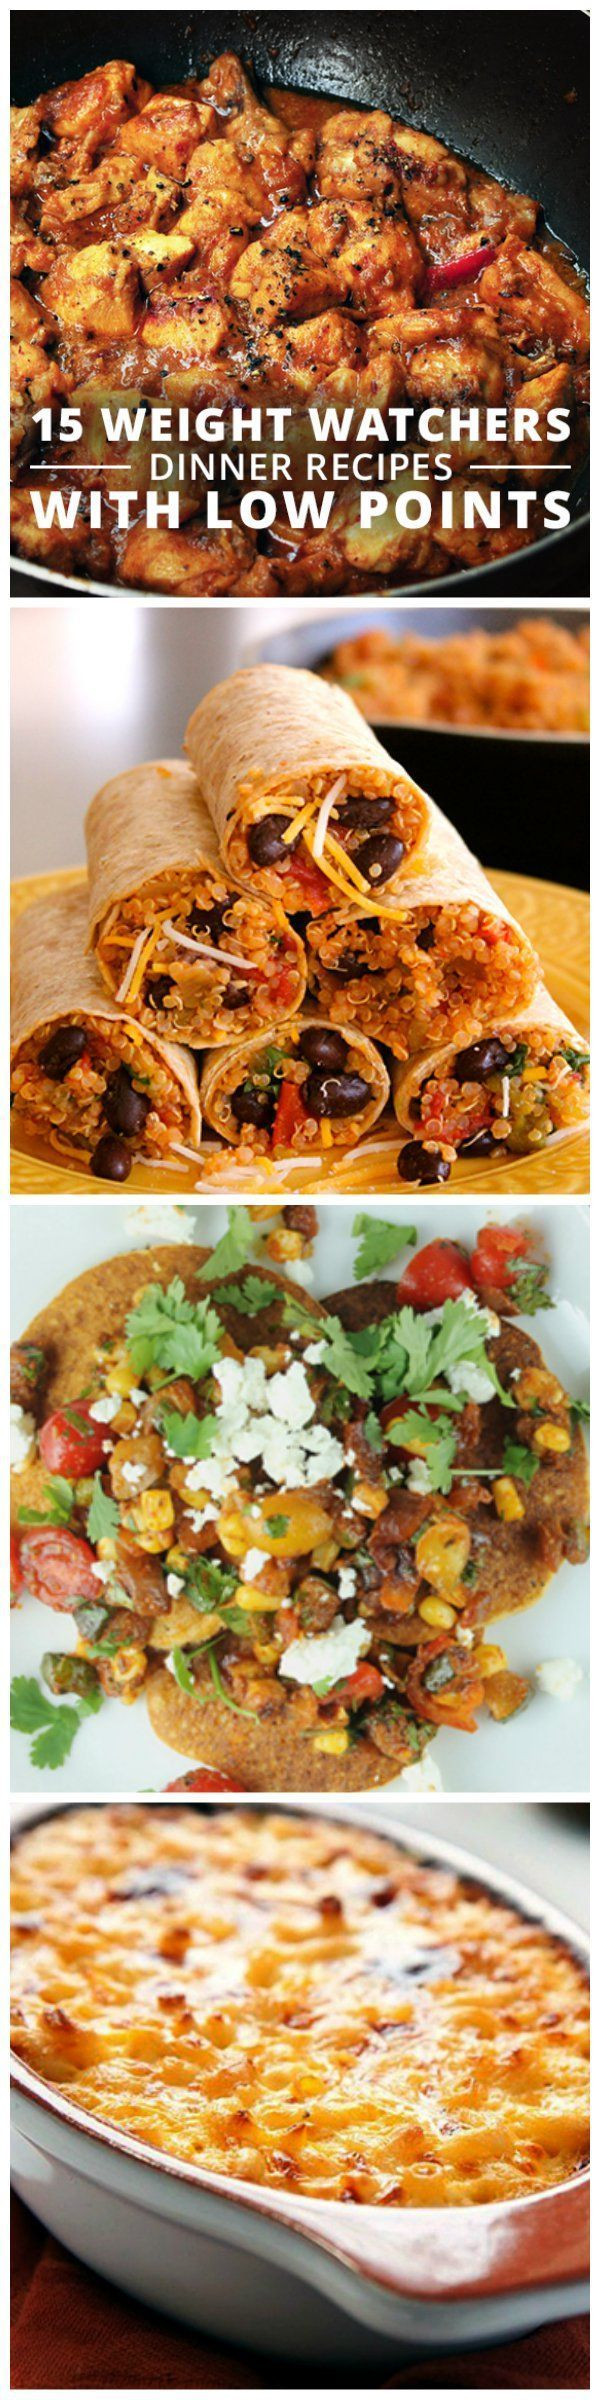 Quick Low Fat Dinners  15 Weight Watchers Dinner Recipes with Low Points